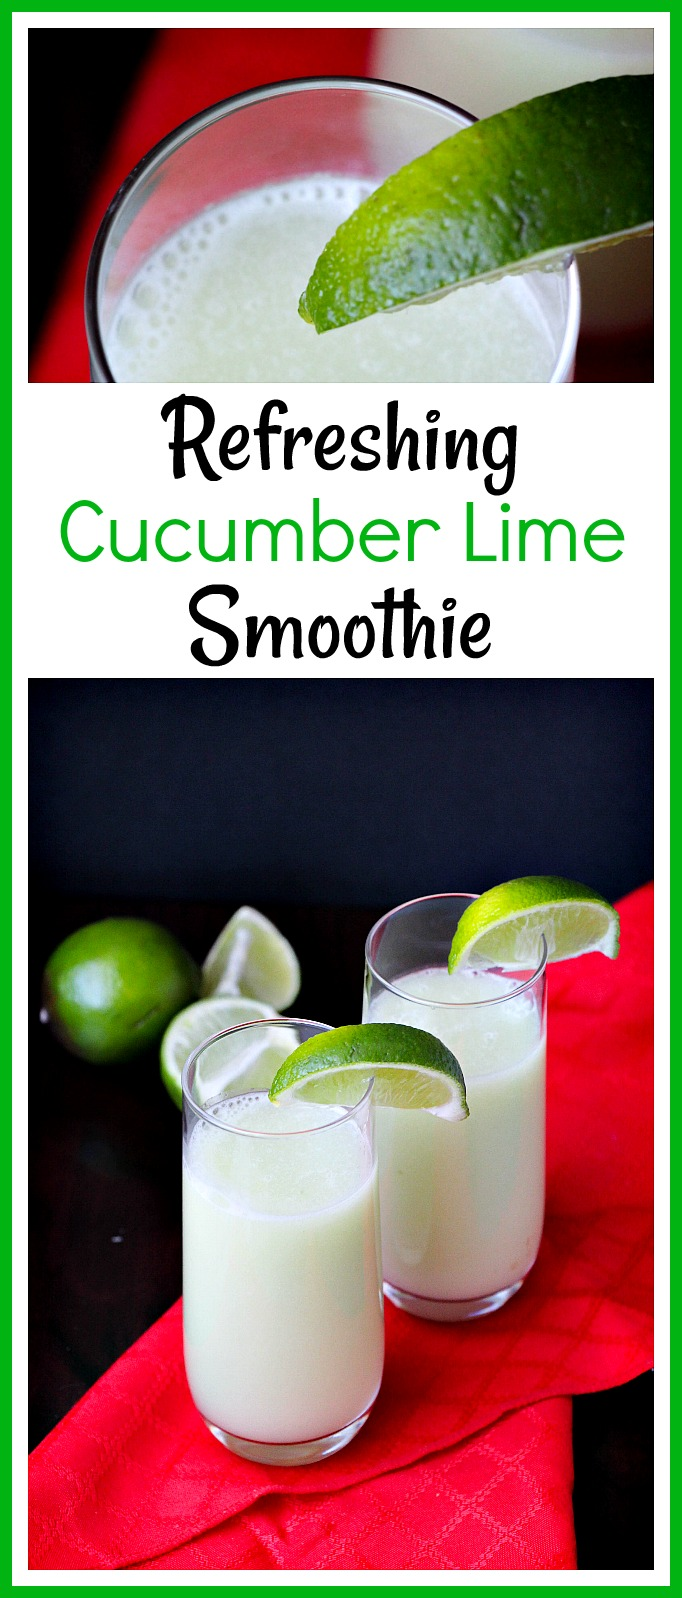 Refreshing Cucumber Lime Smoothie- Need to cool down? This refreshing cucumber lime smoothie can help! It's quick and easy to make, but so cool and delicious! | family friendly, kid-friendly, alcohol free, drink recipe, cold summer drink, smoothie recipe ideas, easy, quick